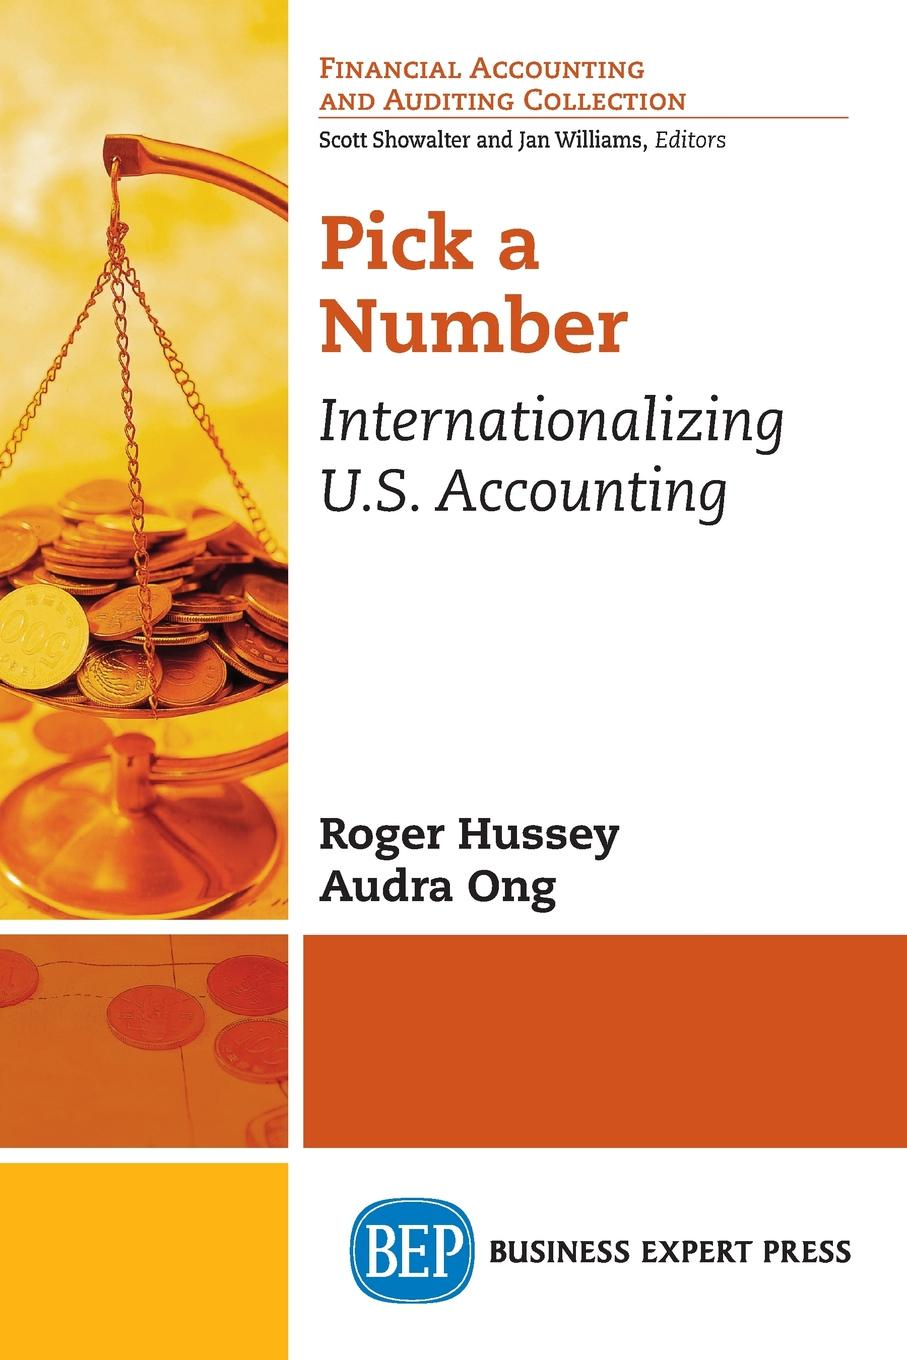 Roger Hussey, Audra Ong. Pick a Number. Internationalizing U.S. Accounting